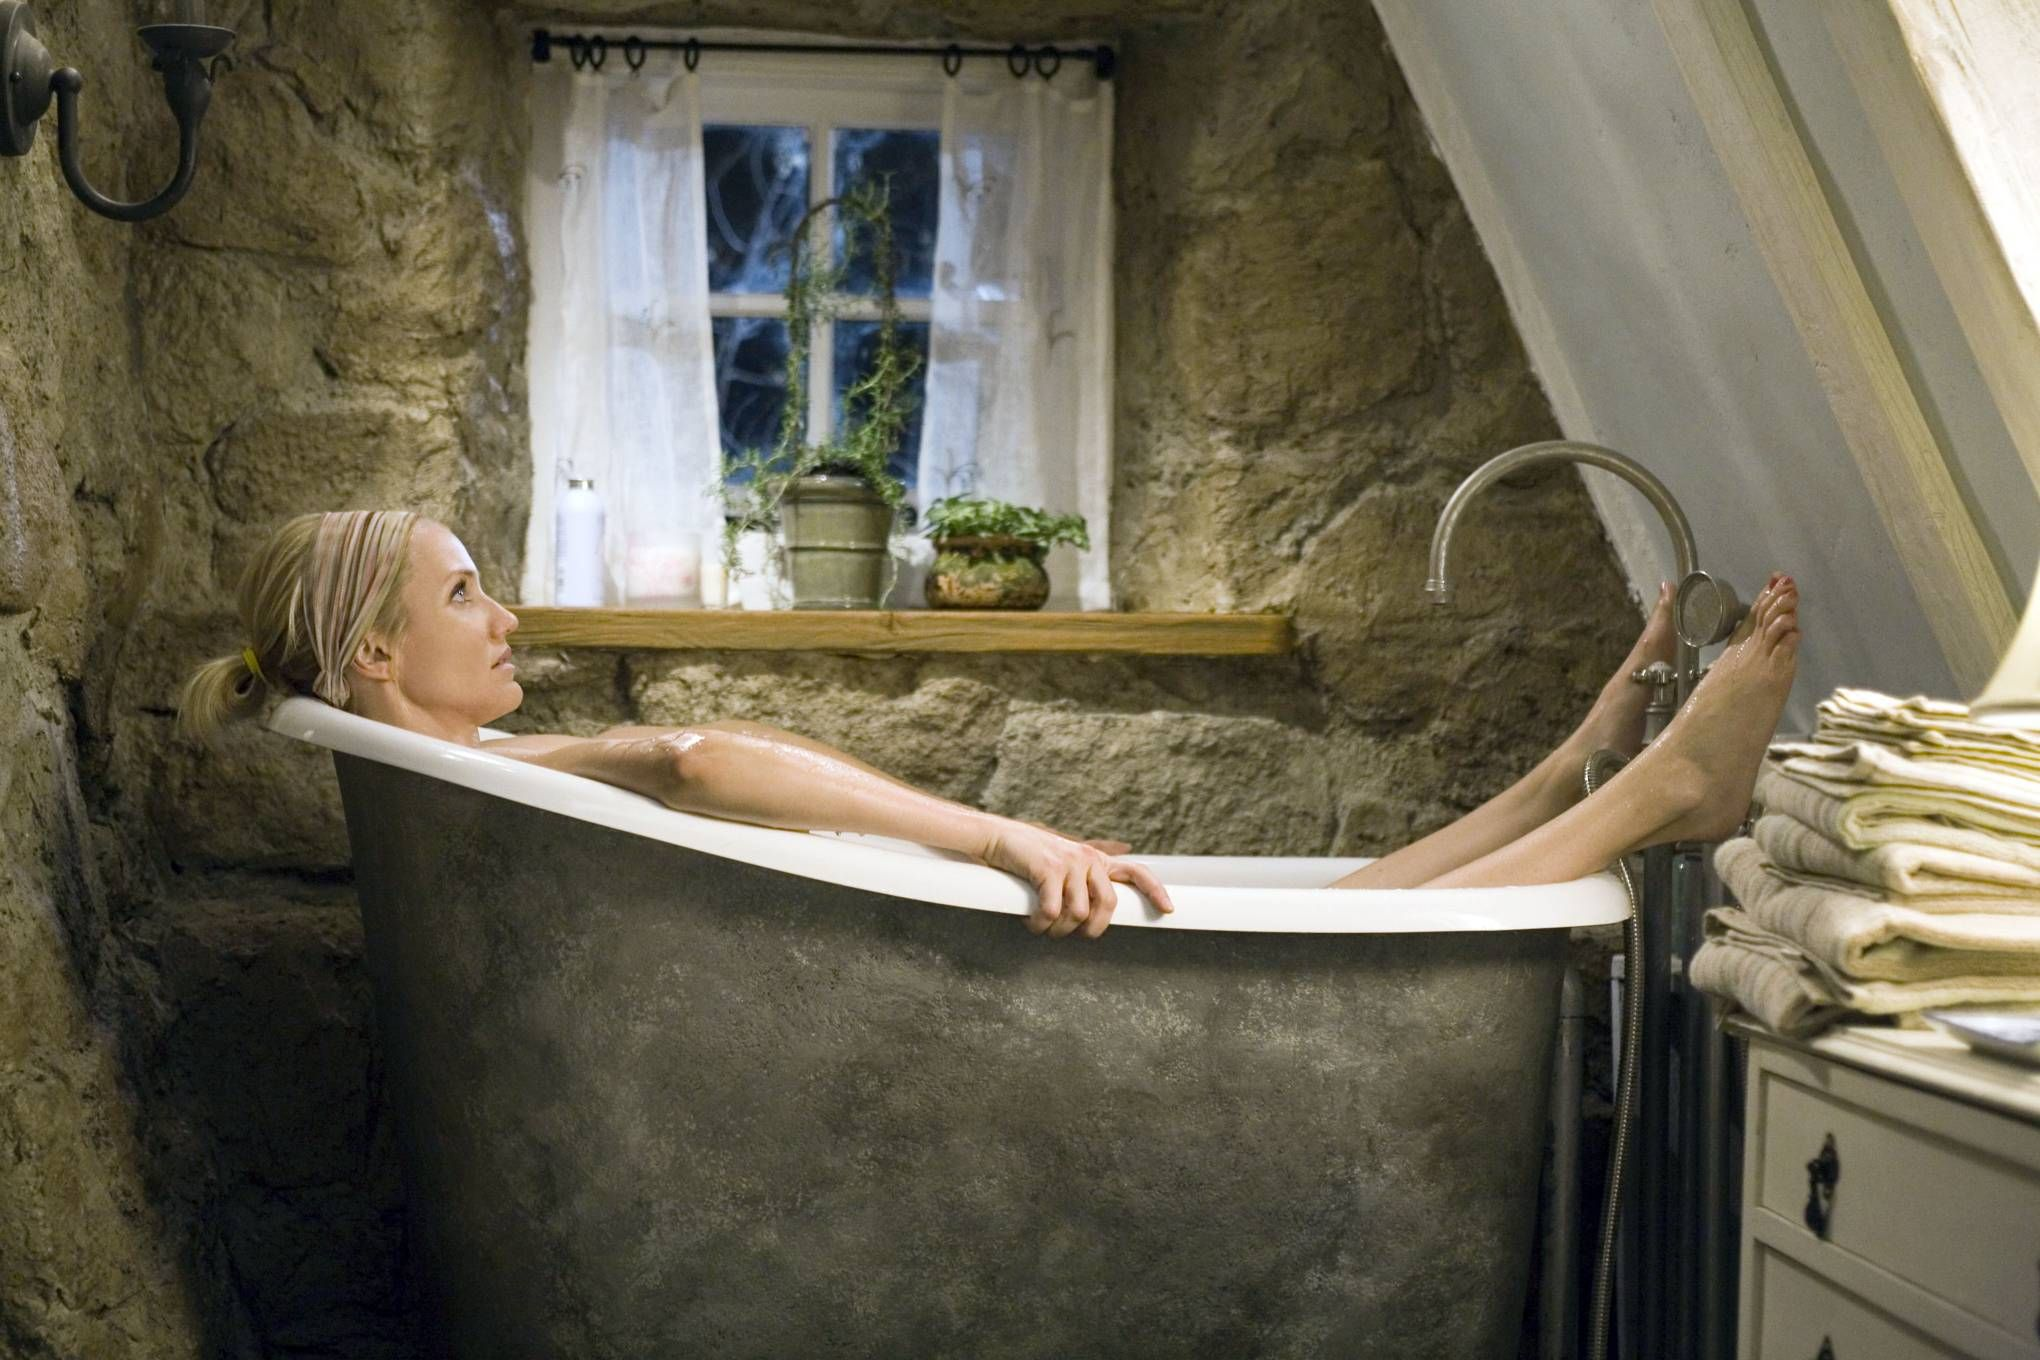 The Most Spectacular Bathroom Interiors From Films English Cottage Holiday Bathroom Holiday Movie